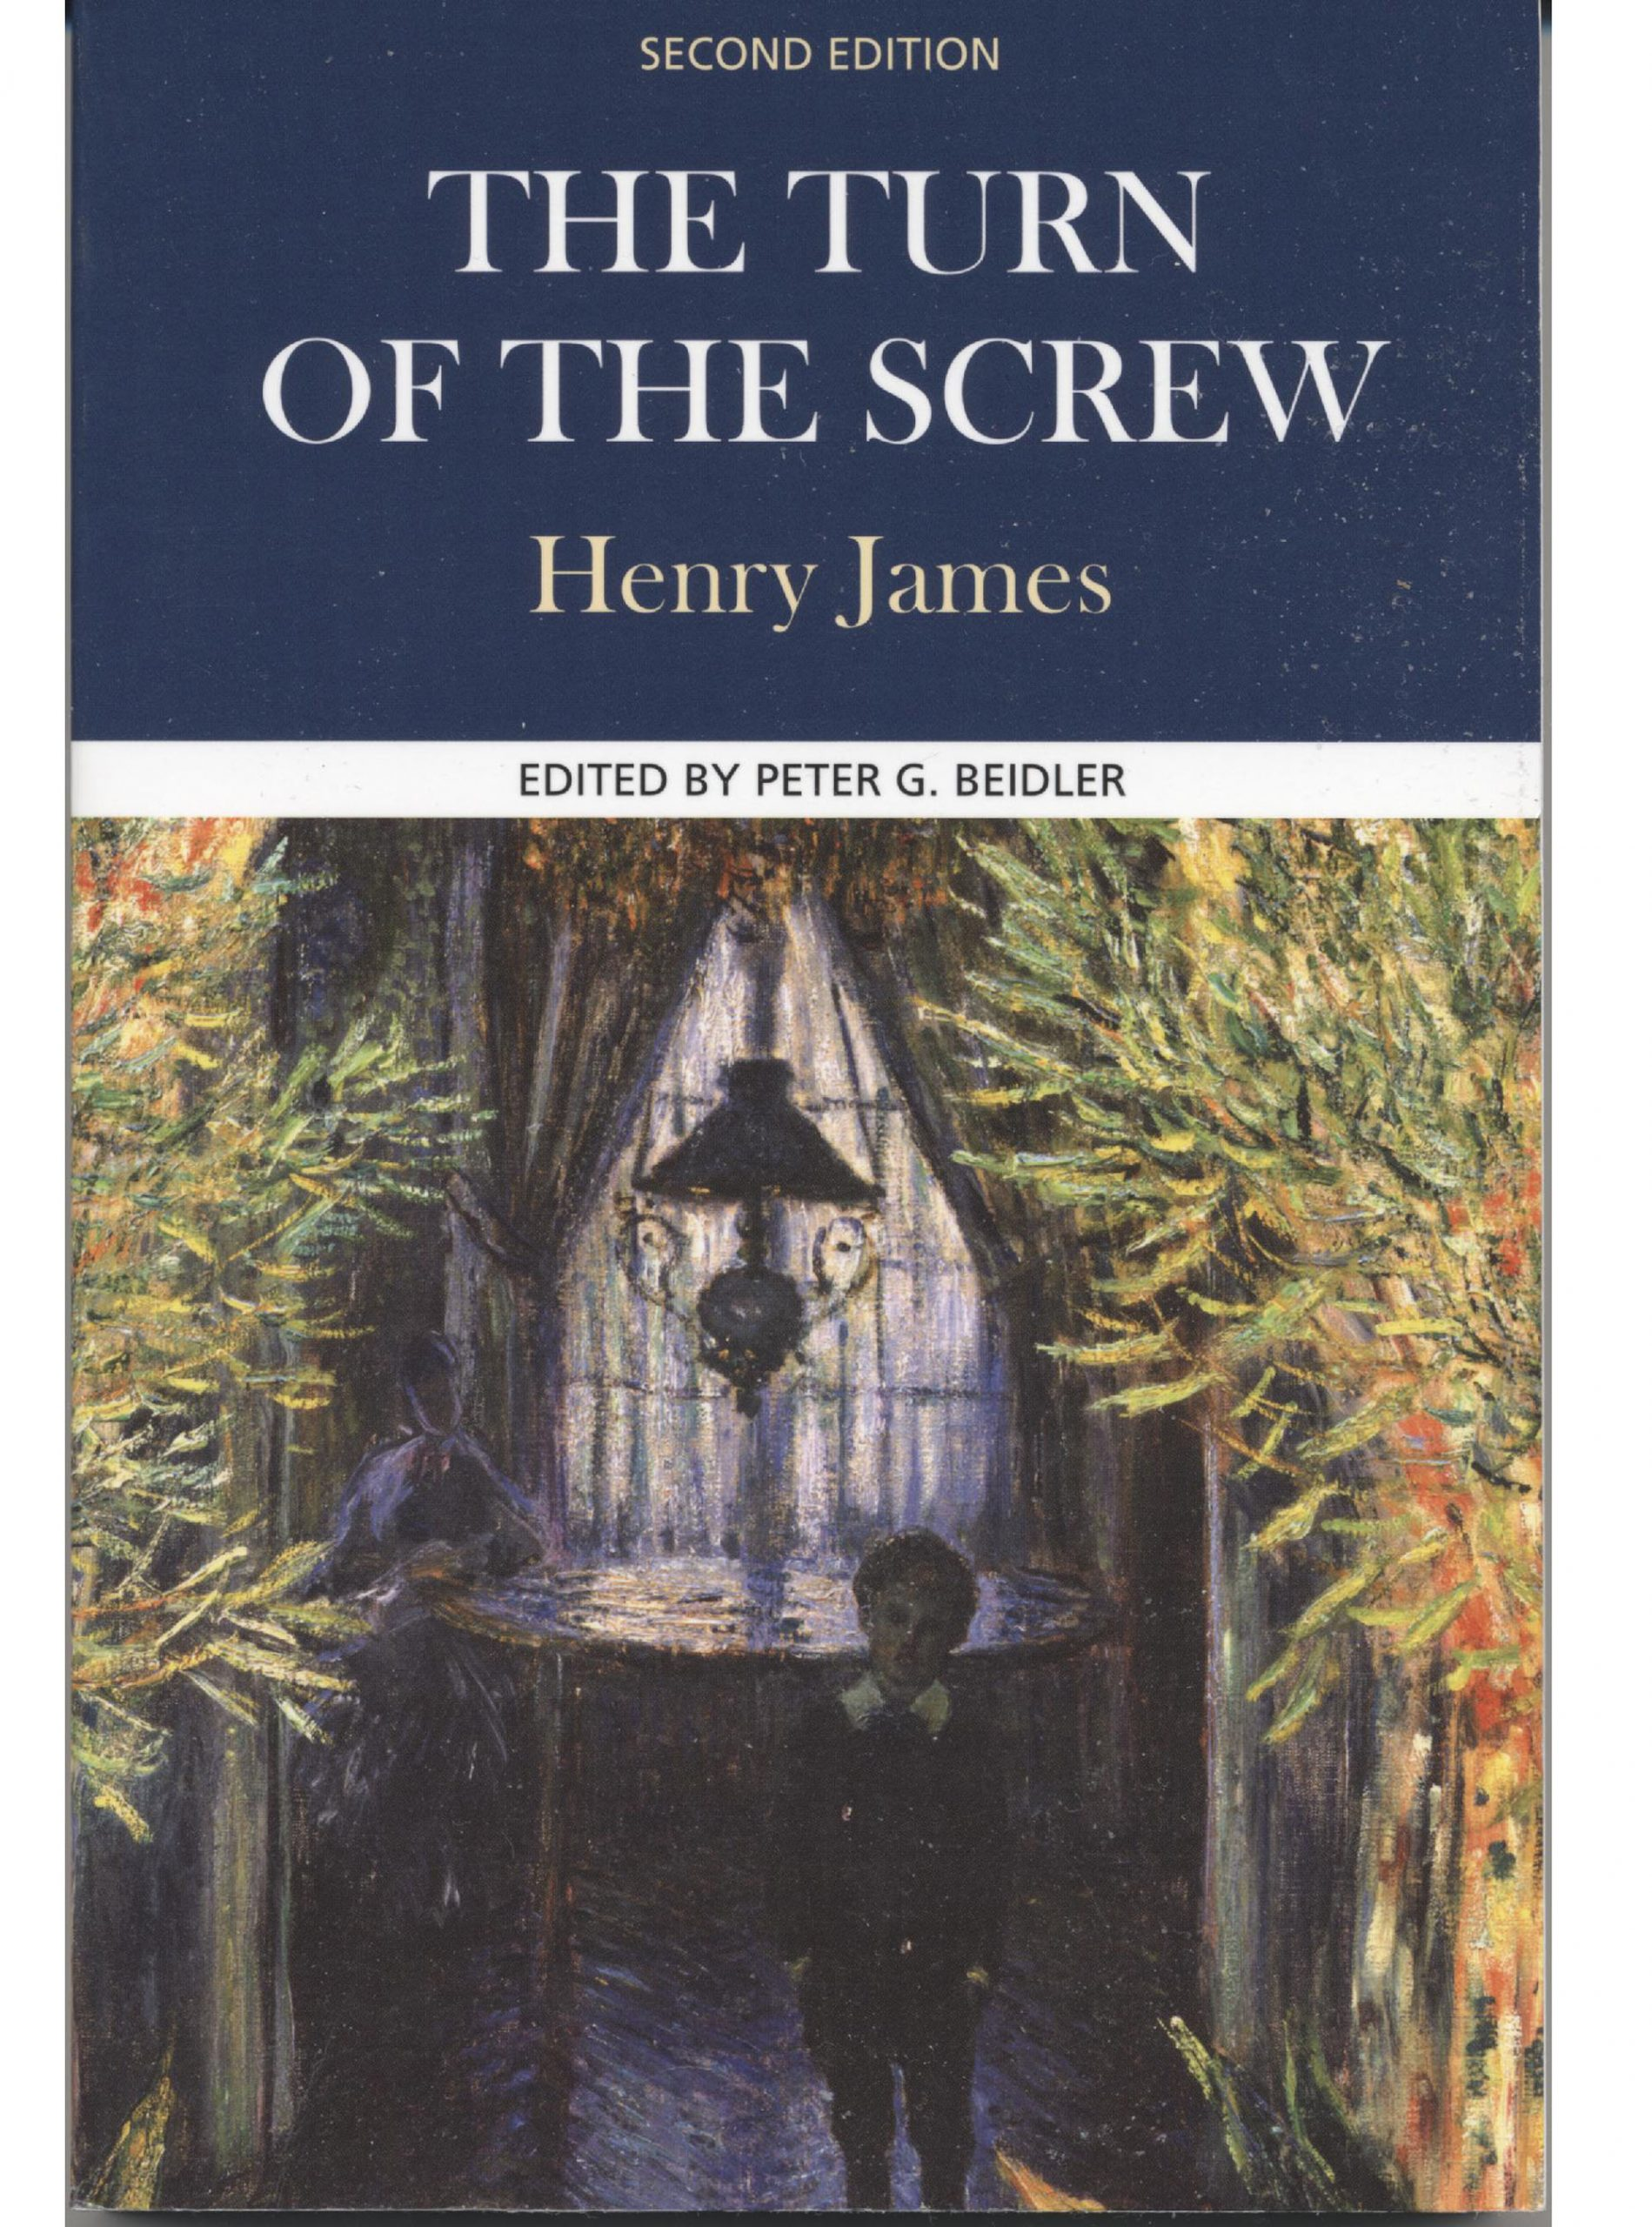 Turn of the Screw by Henry James-book reviews-book-woman and home